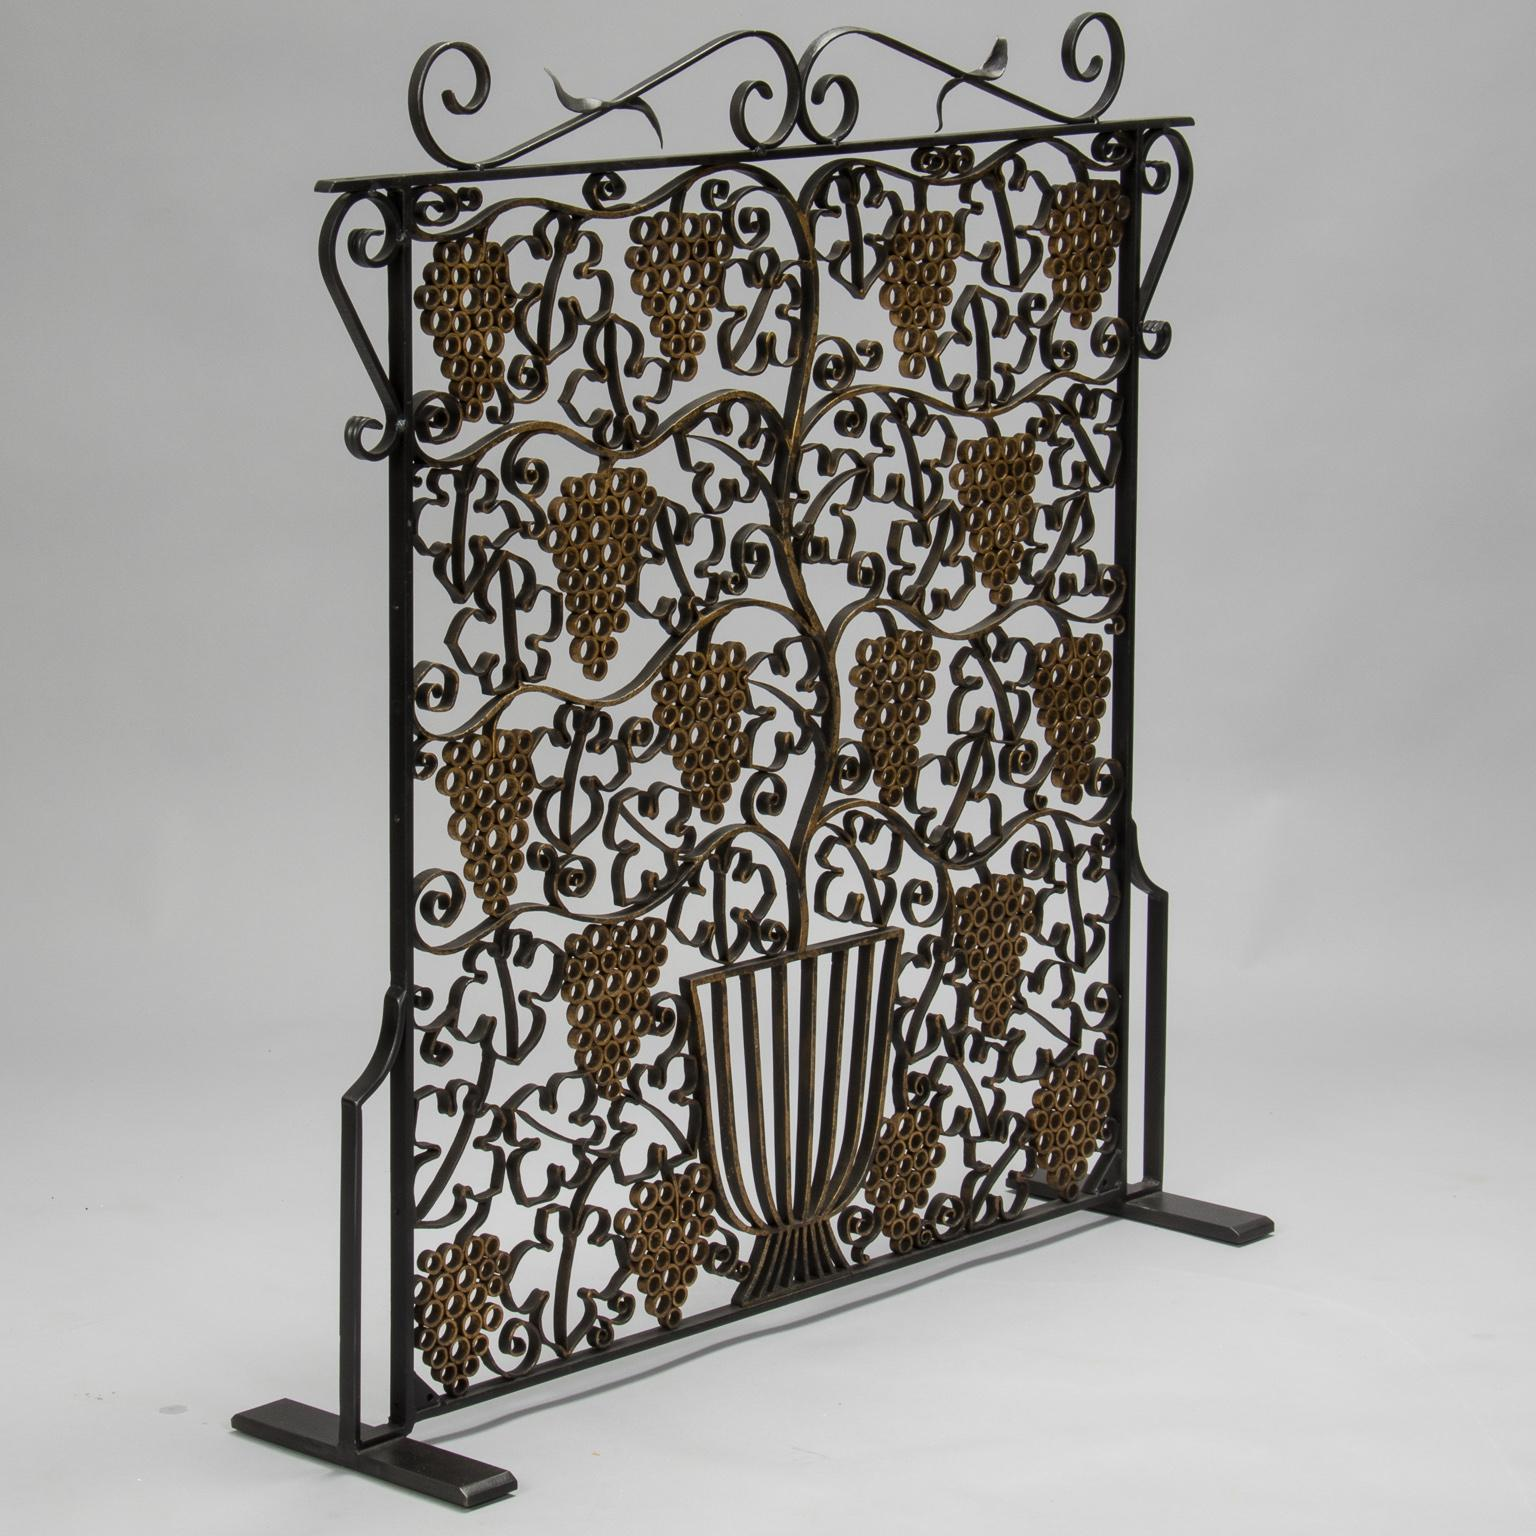 Art deco fireplace screen Cool Fireplace Screen Made From French Art Deco Iron Grill For Sale Image Of Decaso Exquisite Fireplace Screen Made From French Art Deco Iron Grill Decaso